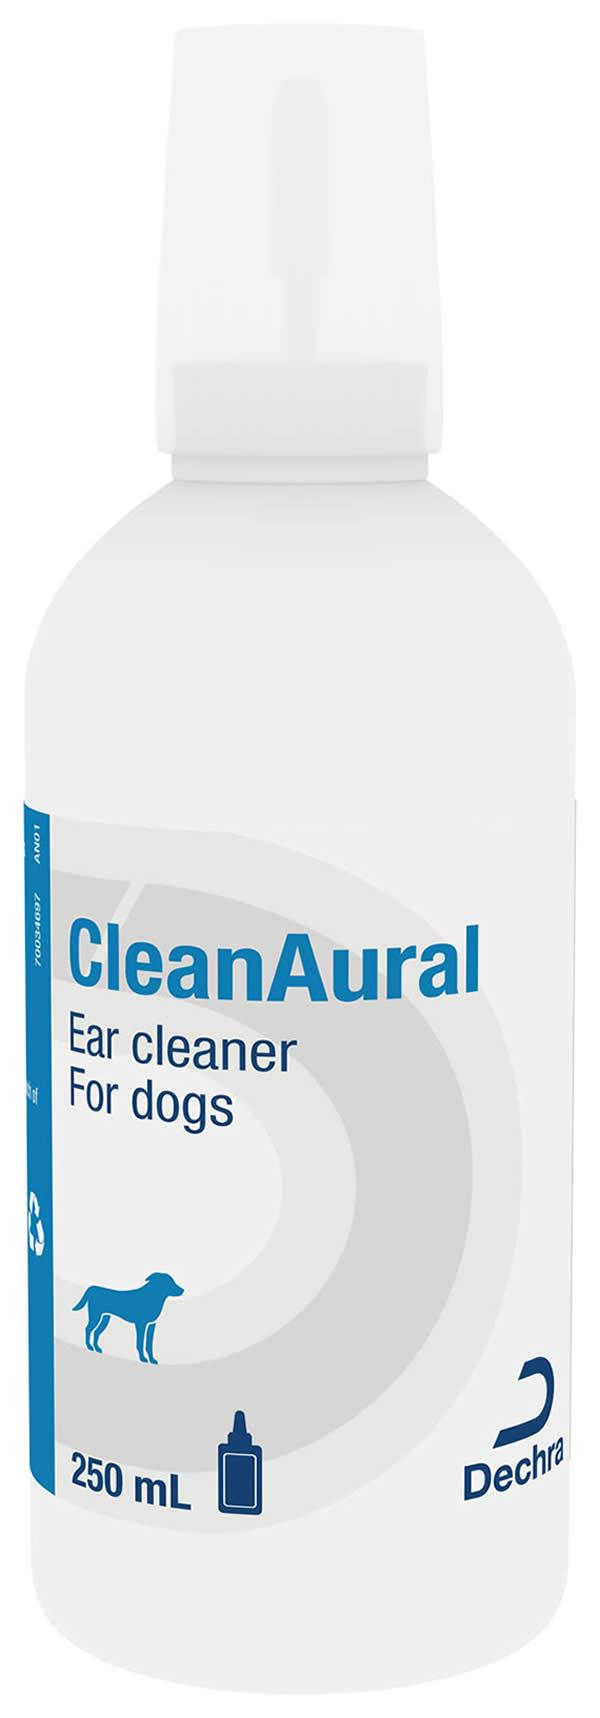 Ear cleaner (250mL)